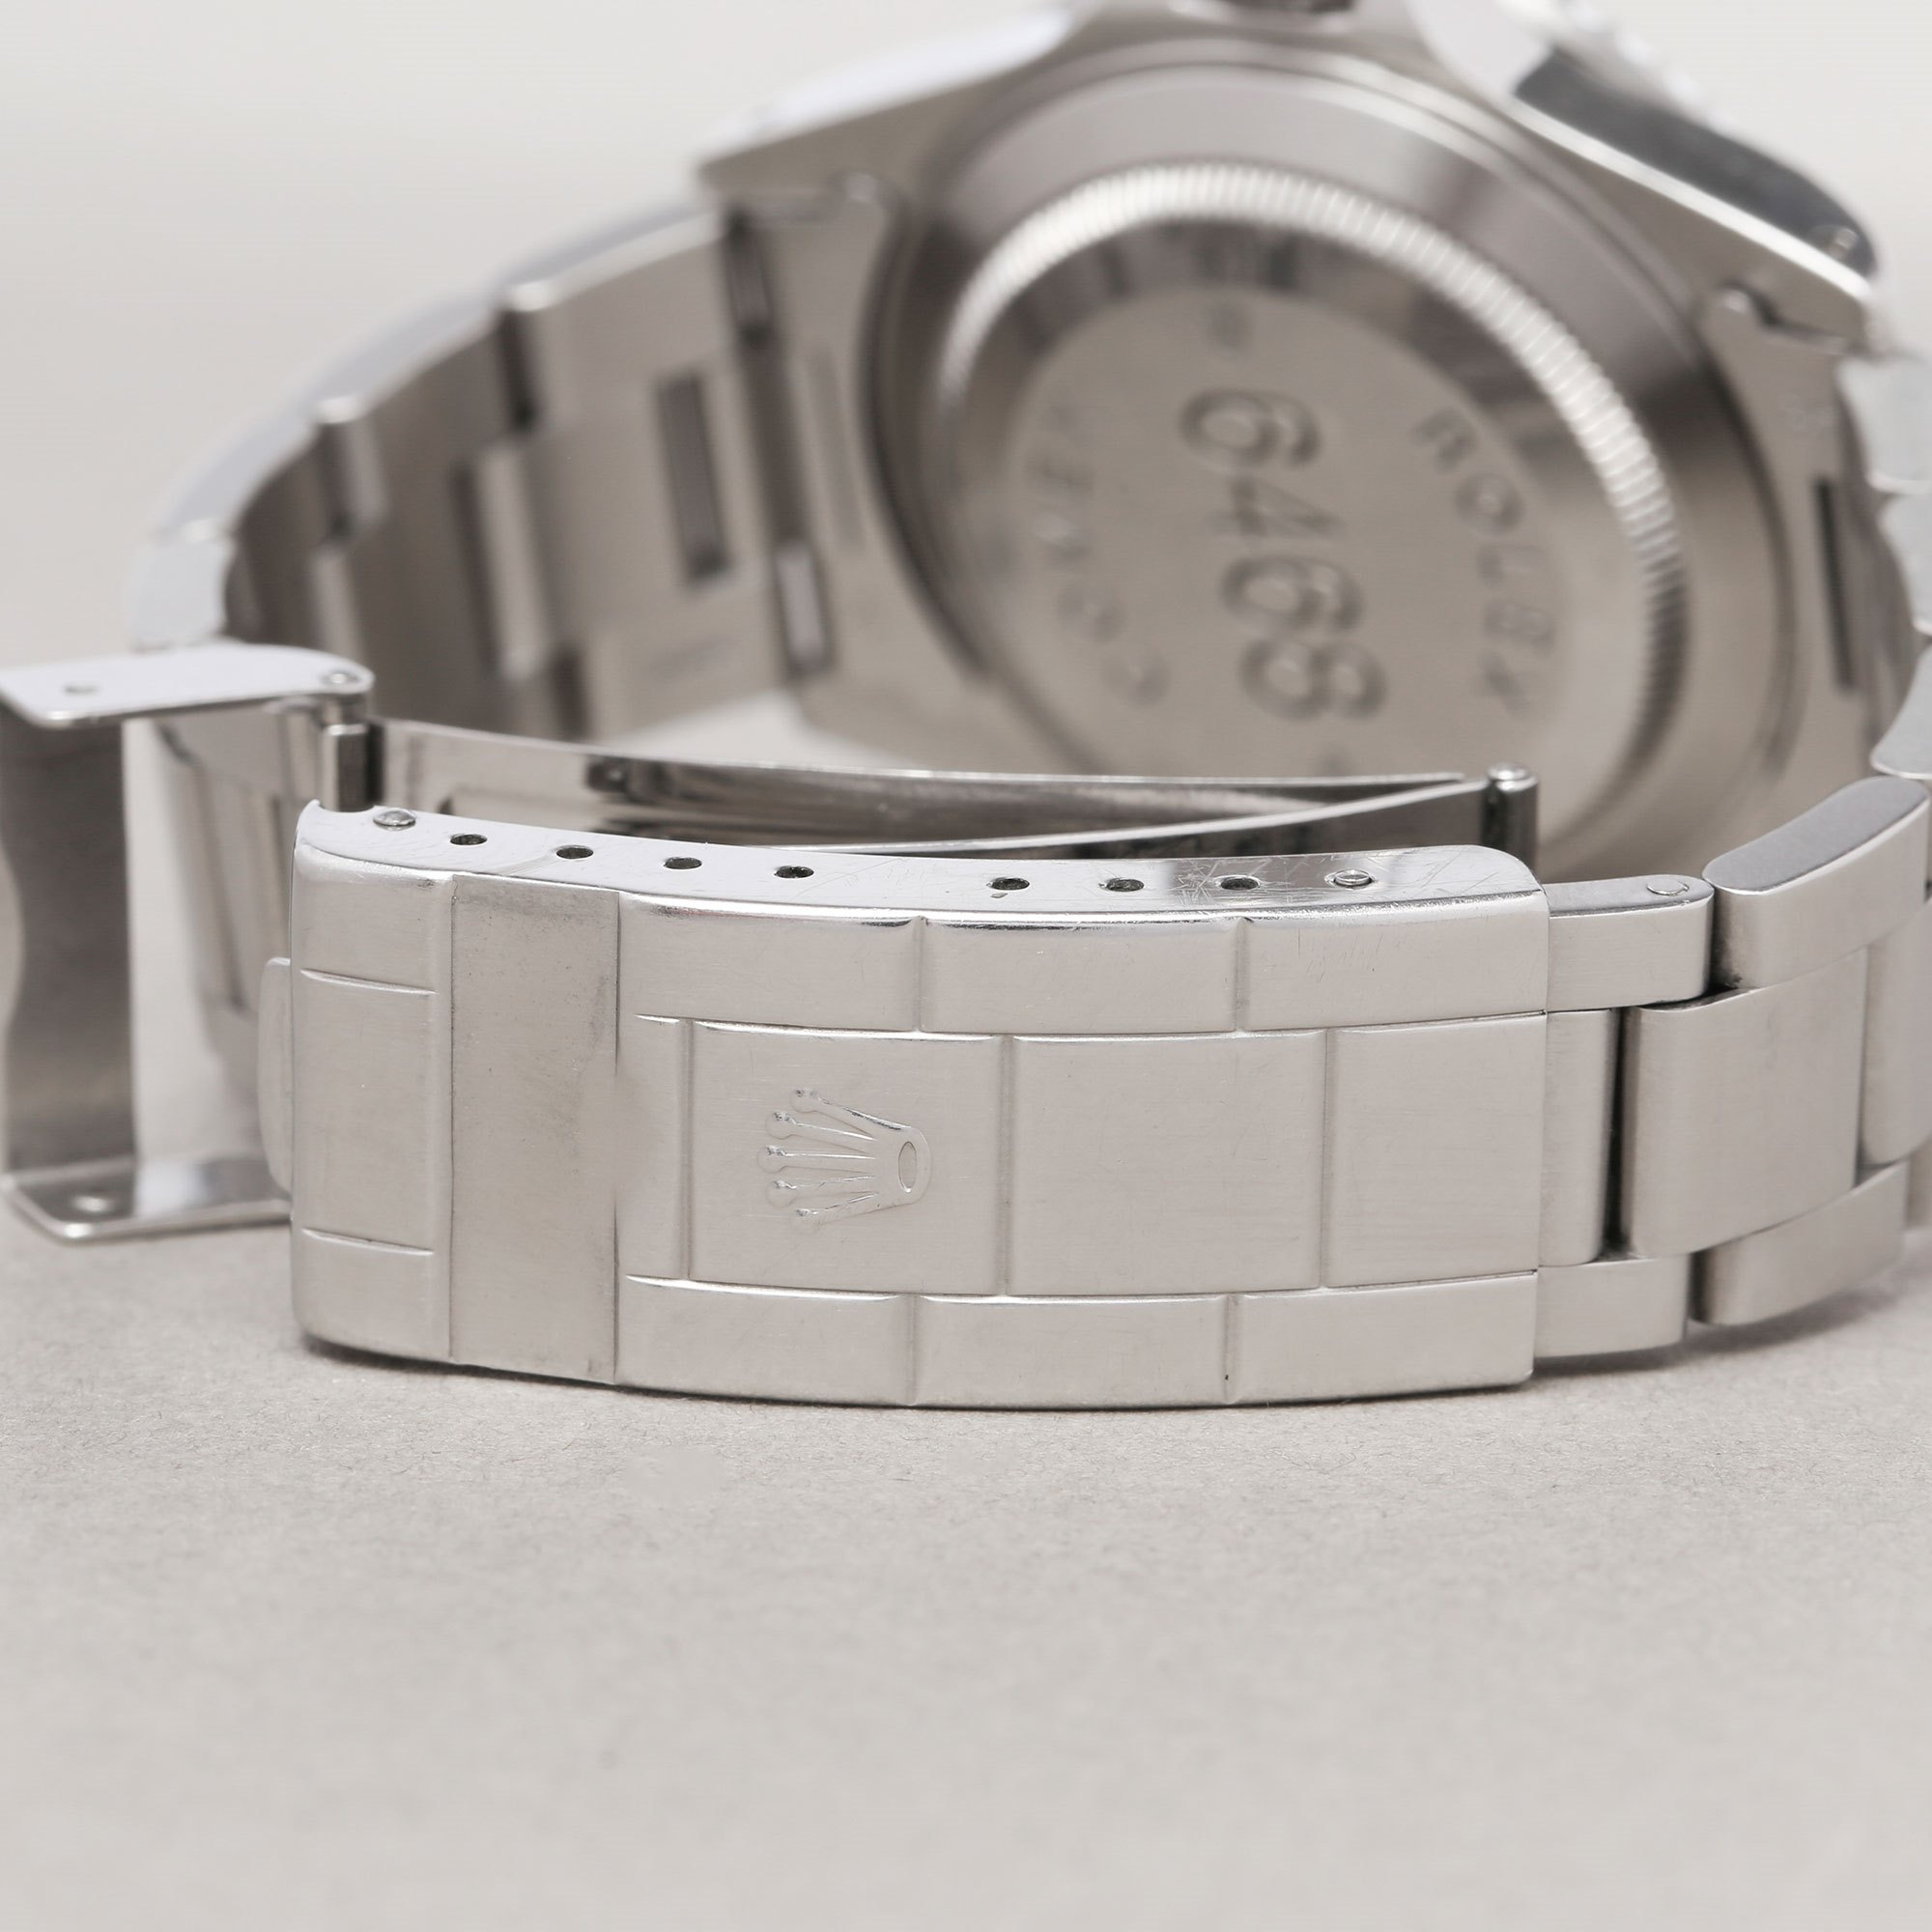 Rolex Submariner 'Comex' Stainless Steel - 1680 Stainless Steel 1680